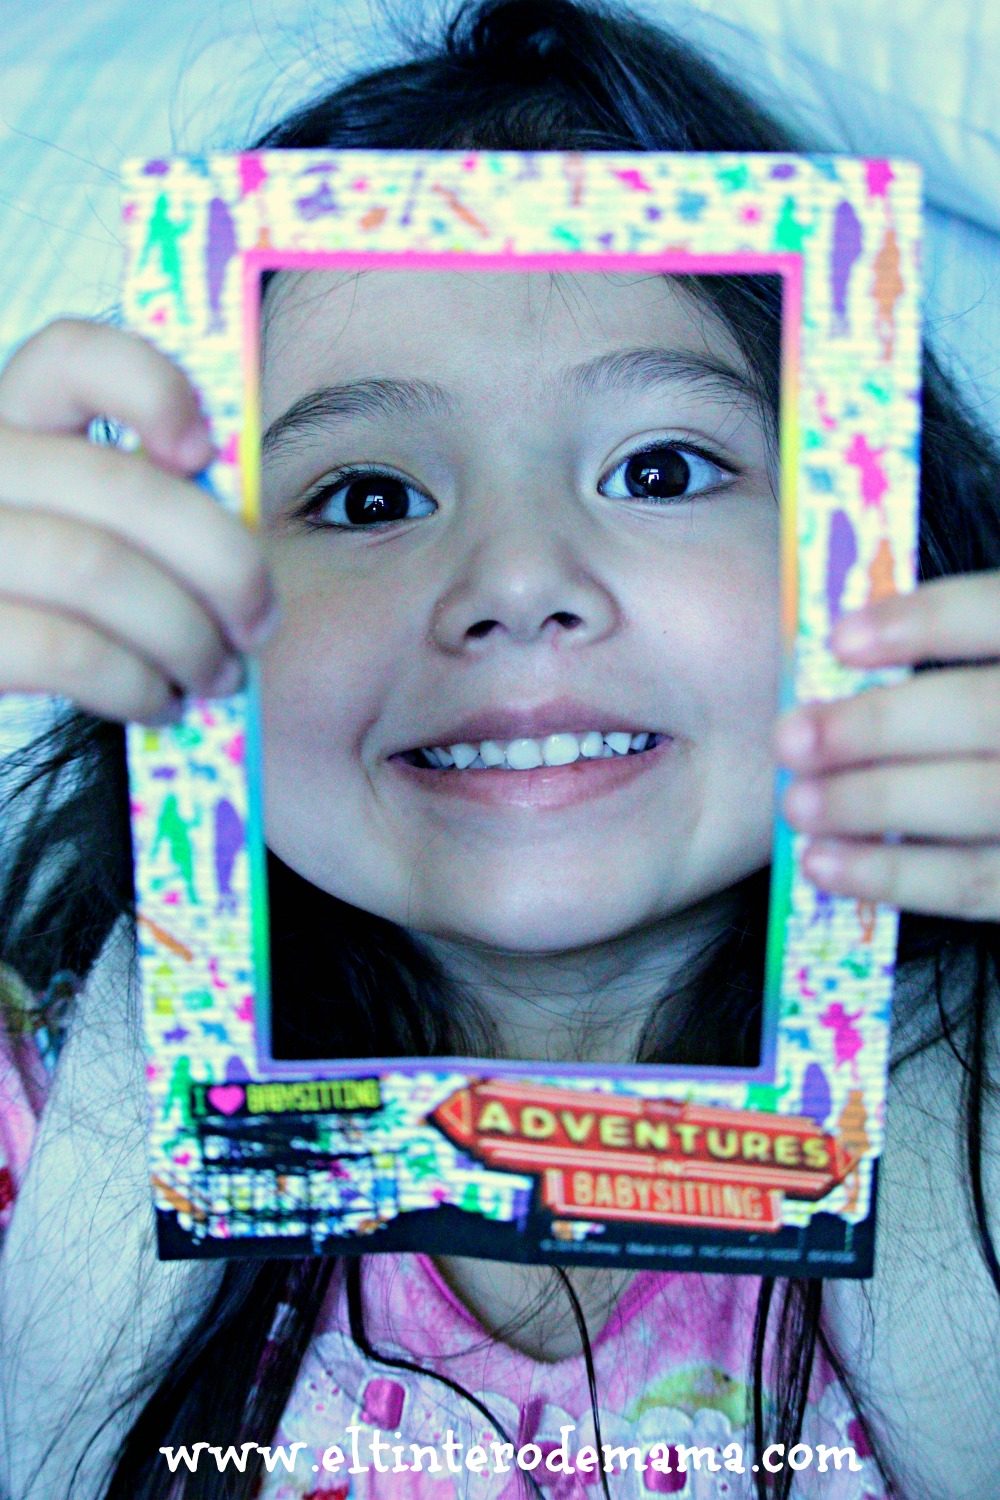 Adventures_in_babysitting_giveaway_and_review